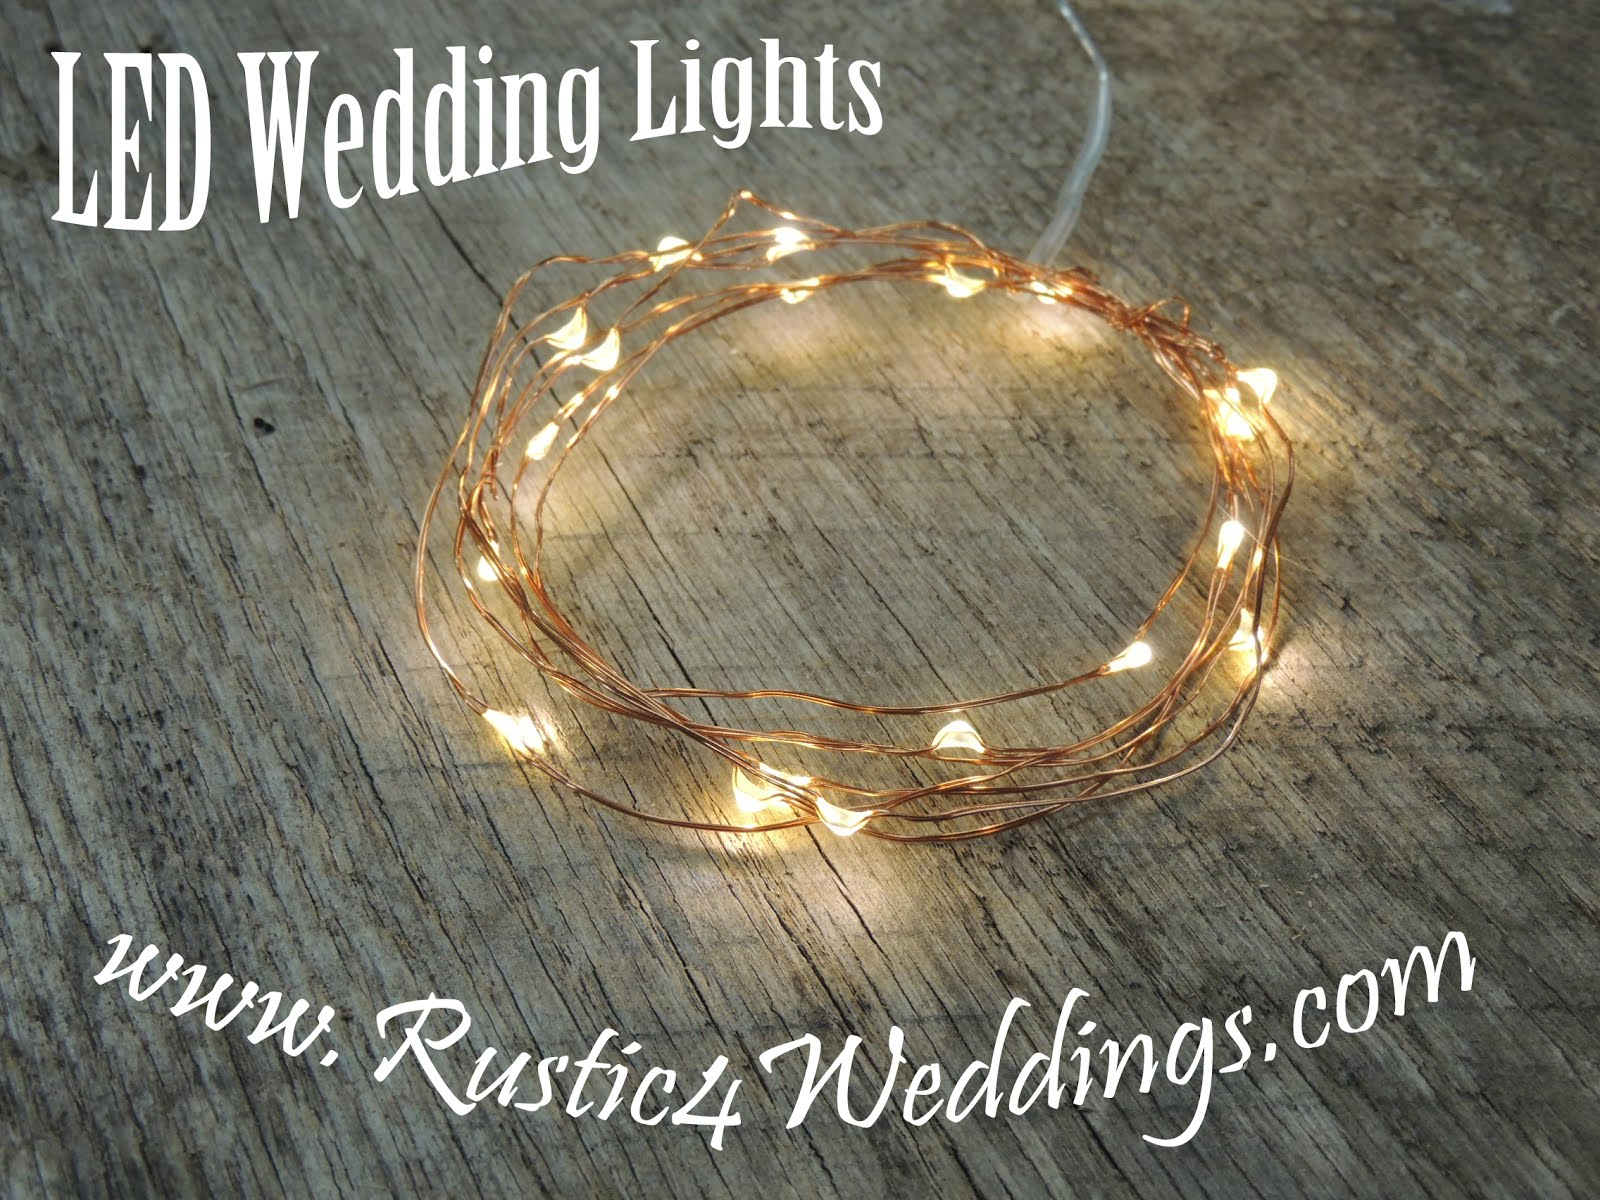 LED Wedding Lights